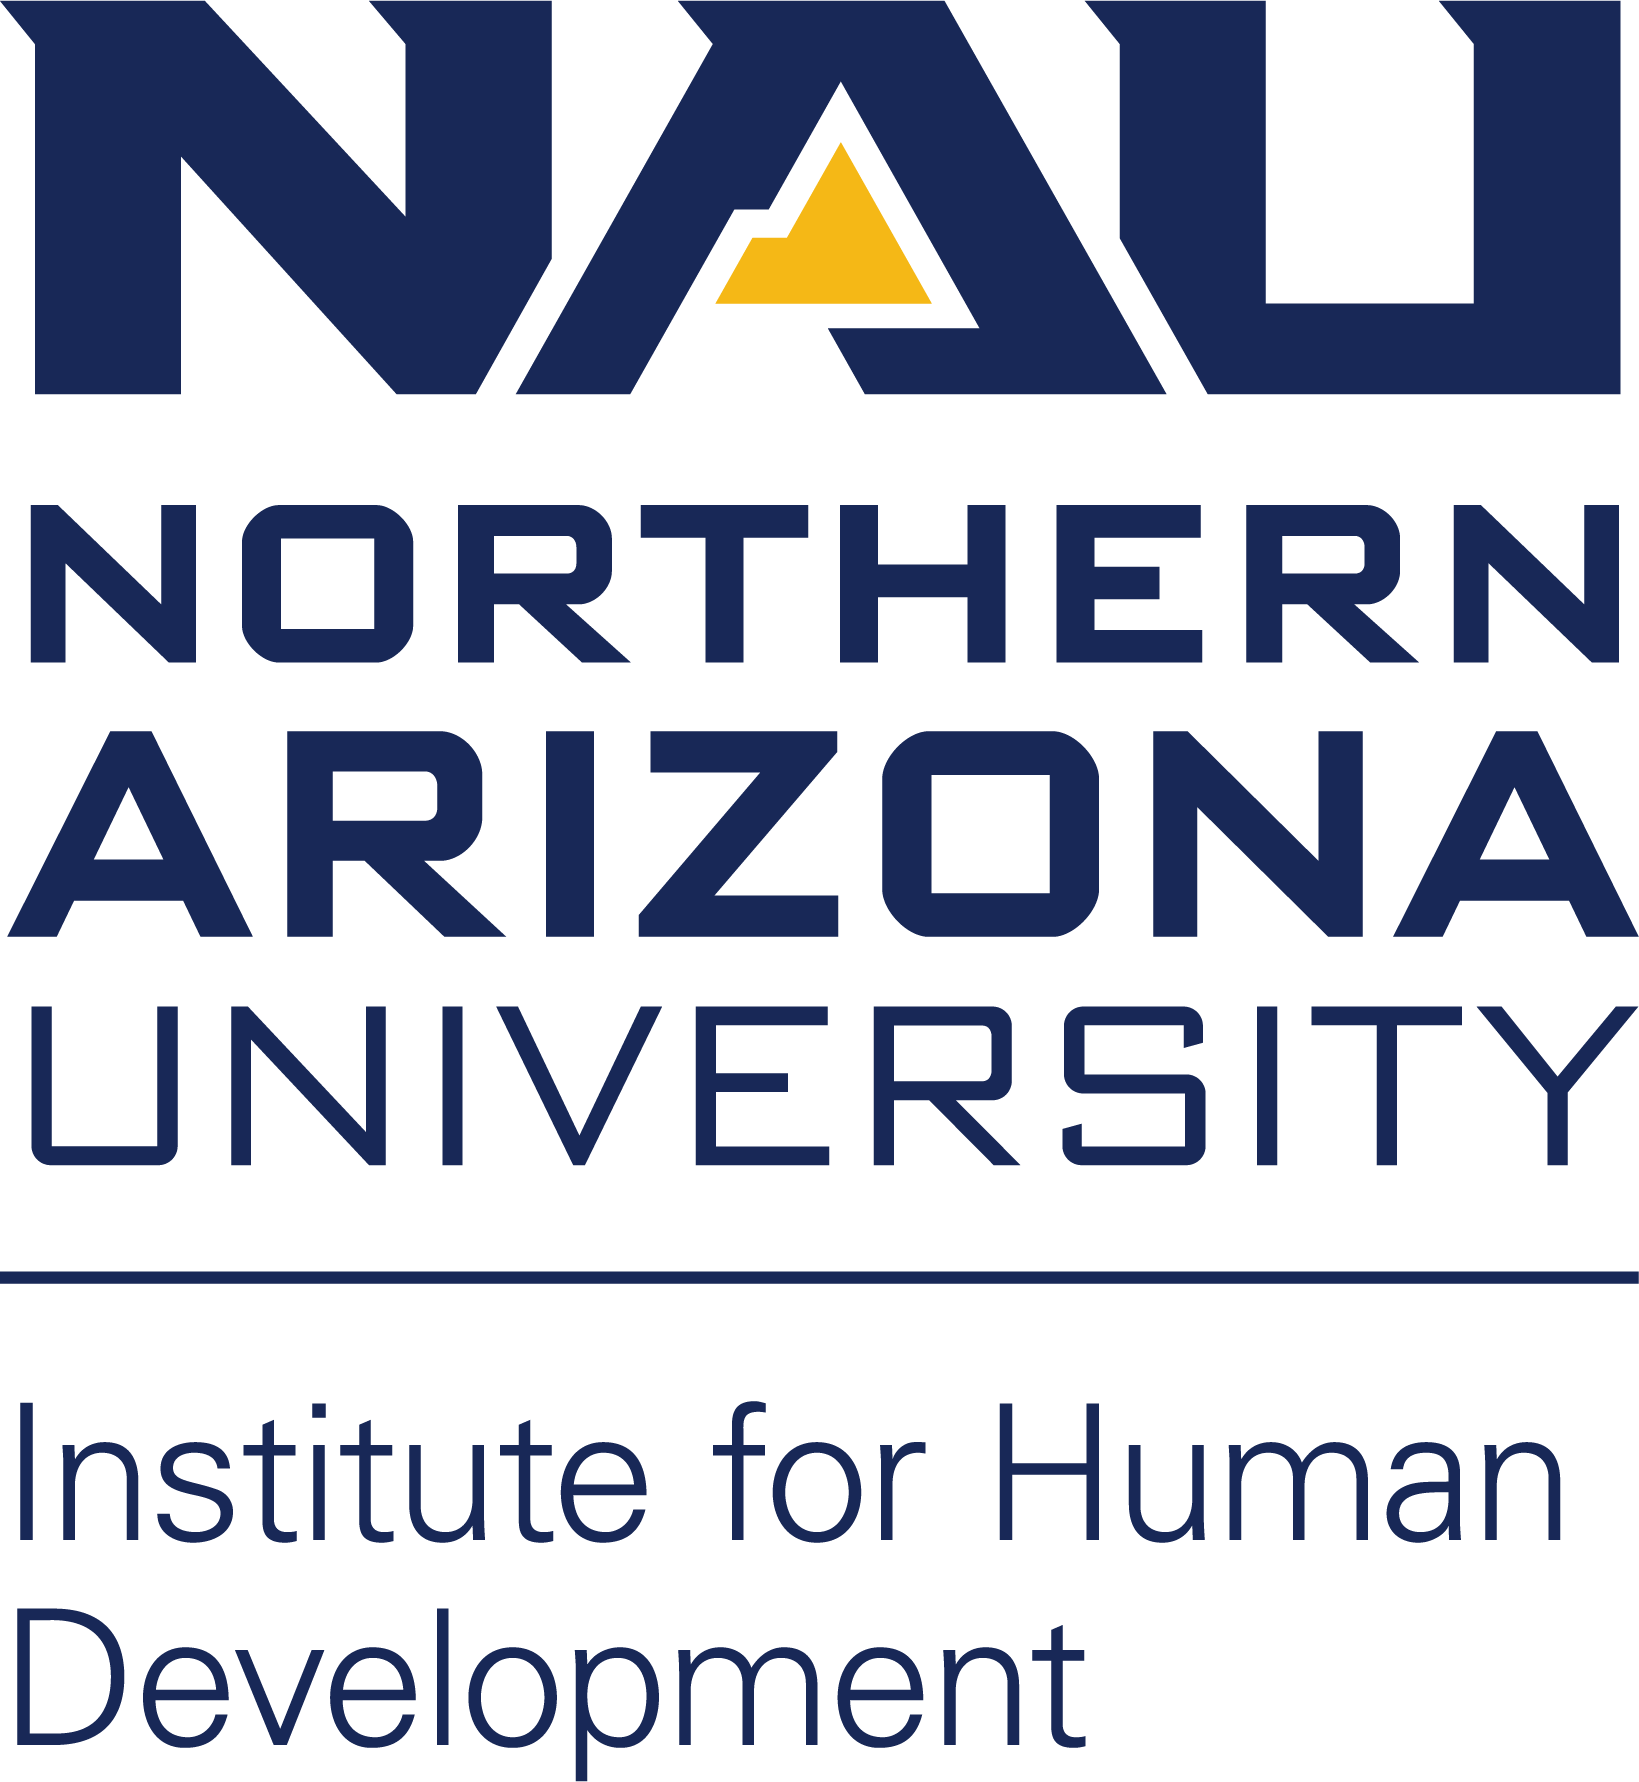 The Northern Arizona University - Institute for Human Development logo consists of the letters NAU with a mountain icon in the A of NAU.